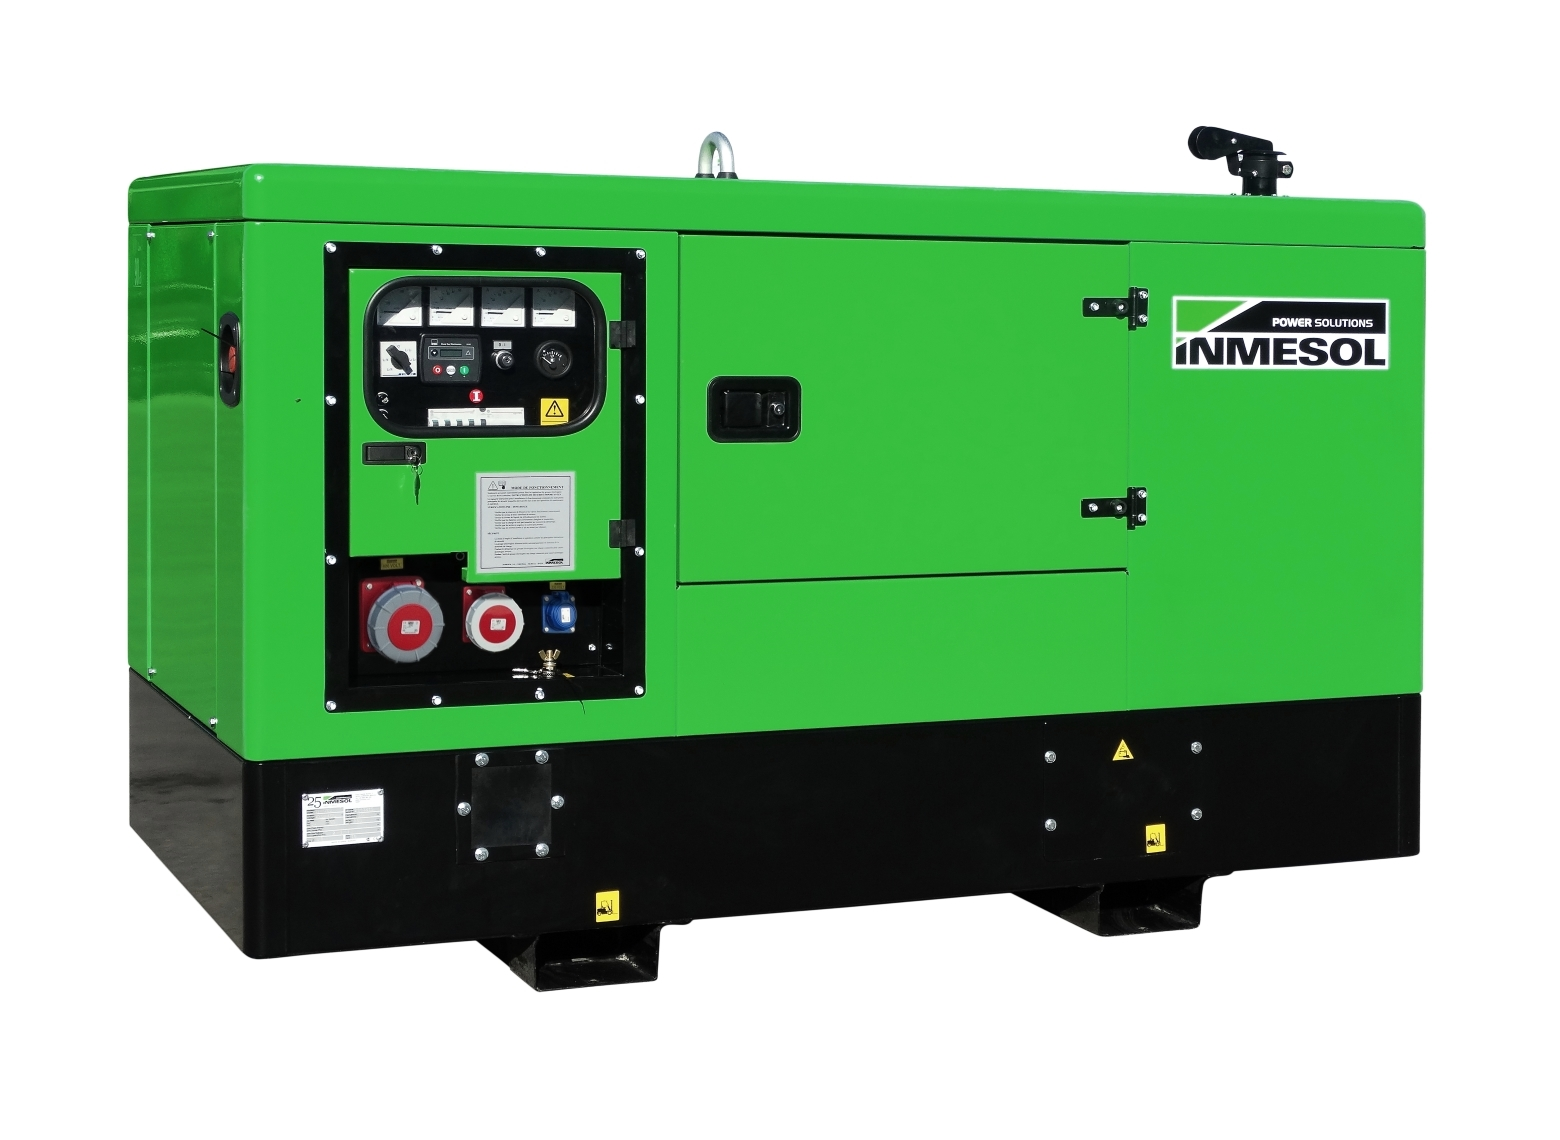 Generator with manual control panel.II-033 - FPT - F32AM1A - 1.500 R.P.M. | 50 Hz